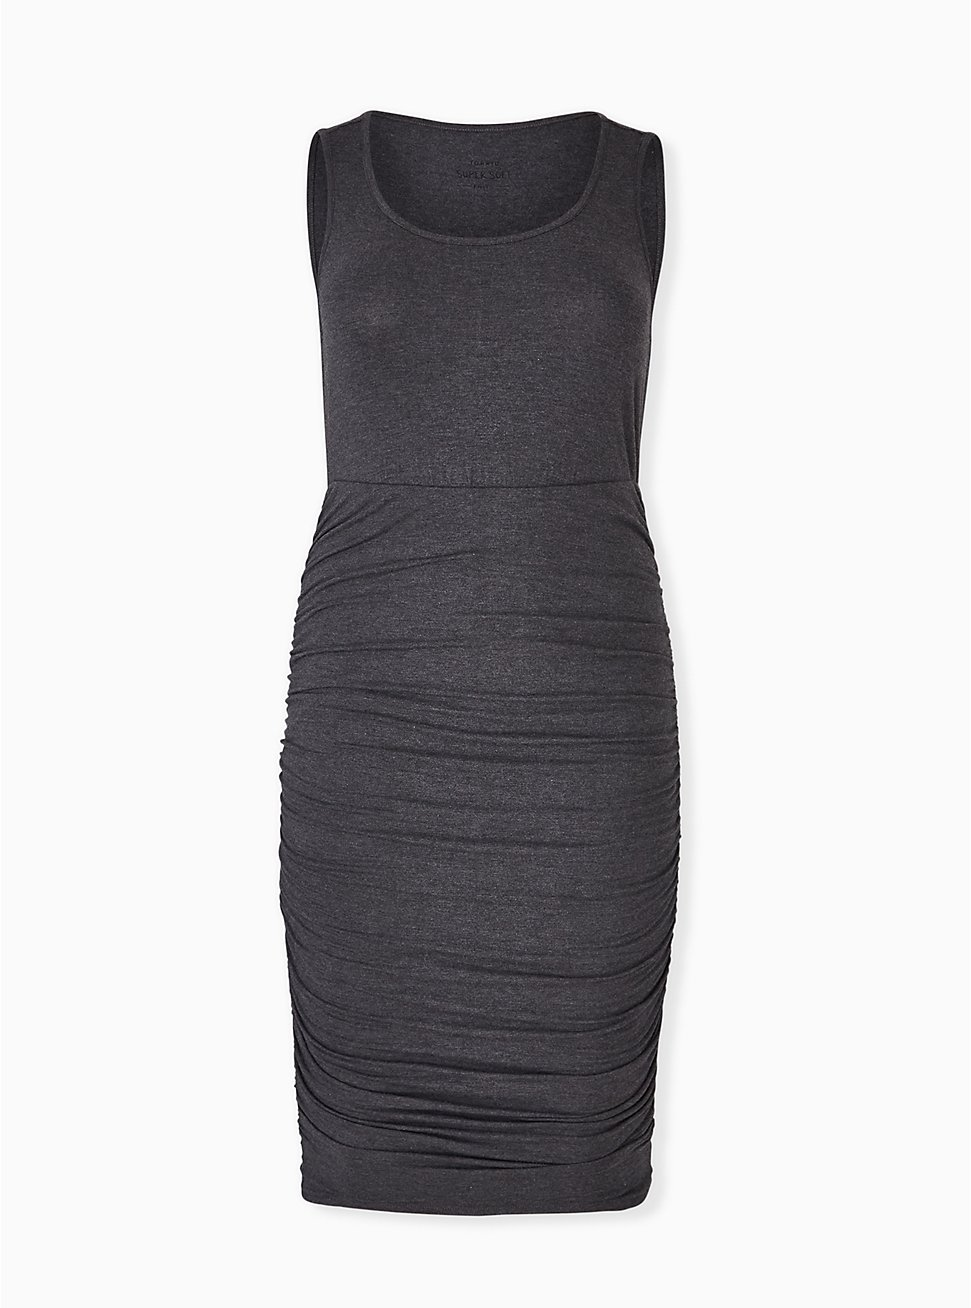 Super Soft Charcoal Grey Ruched Midi Bodycon Dress, HEATHER GREY, hi-res